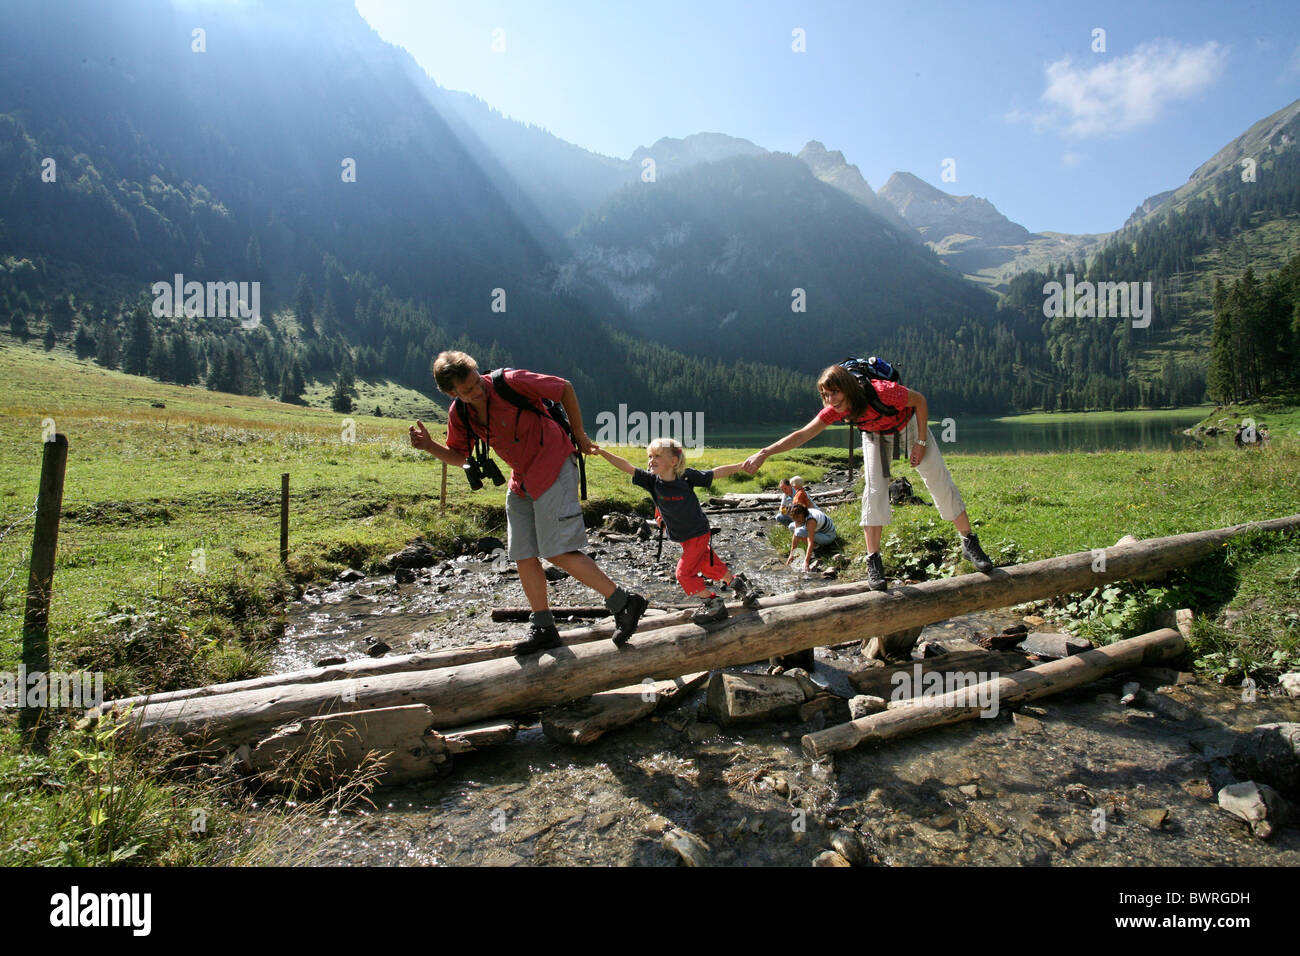 Switzerland Europe Voralpsee town Grabs canton St. Gallen Outdoor Outdoors Outside mountain mountains alps - Stock Image